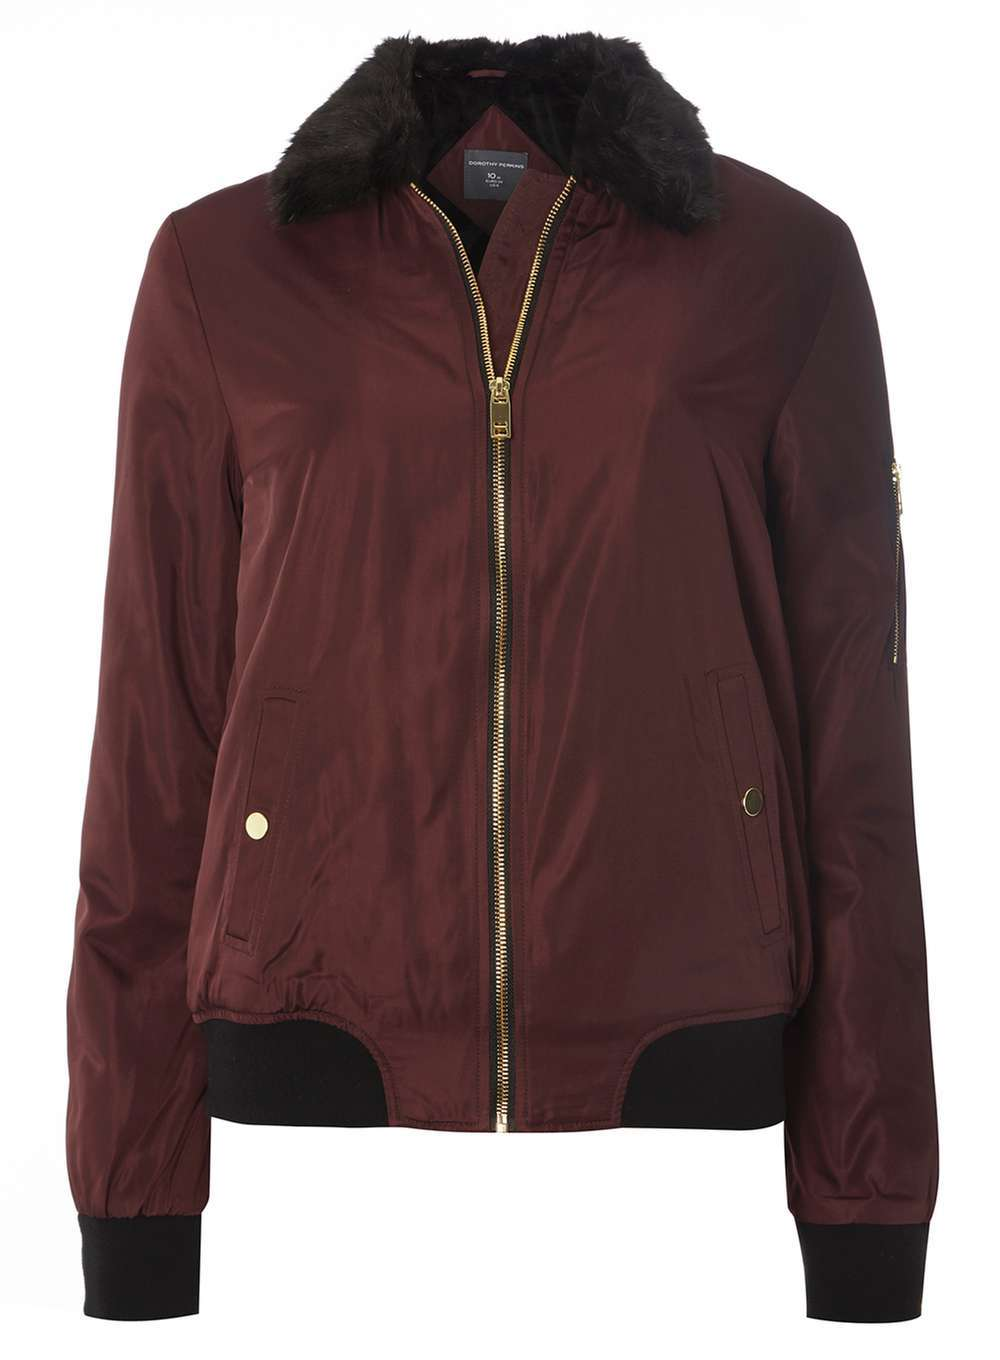 Womens **Tall Faux Fur Collar Bomber Jacket Red - pattern: plain; fit: loose; style: bomber; predominant colour: burgundy; secondary colour: black; occasions: casual; length: standard; fibres: polyester/polyamide - 100%; sleeve length: long sleeve; sleeve style: standard; texture group: structured shiny - satin/tafetta/silk etc.; collar: fur; collar break: high; pattern type: fabric; embellishment: fur; multicoloured: multicoloured; season: a/w 2016; wardrobe: highlight